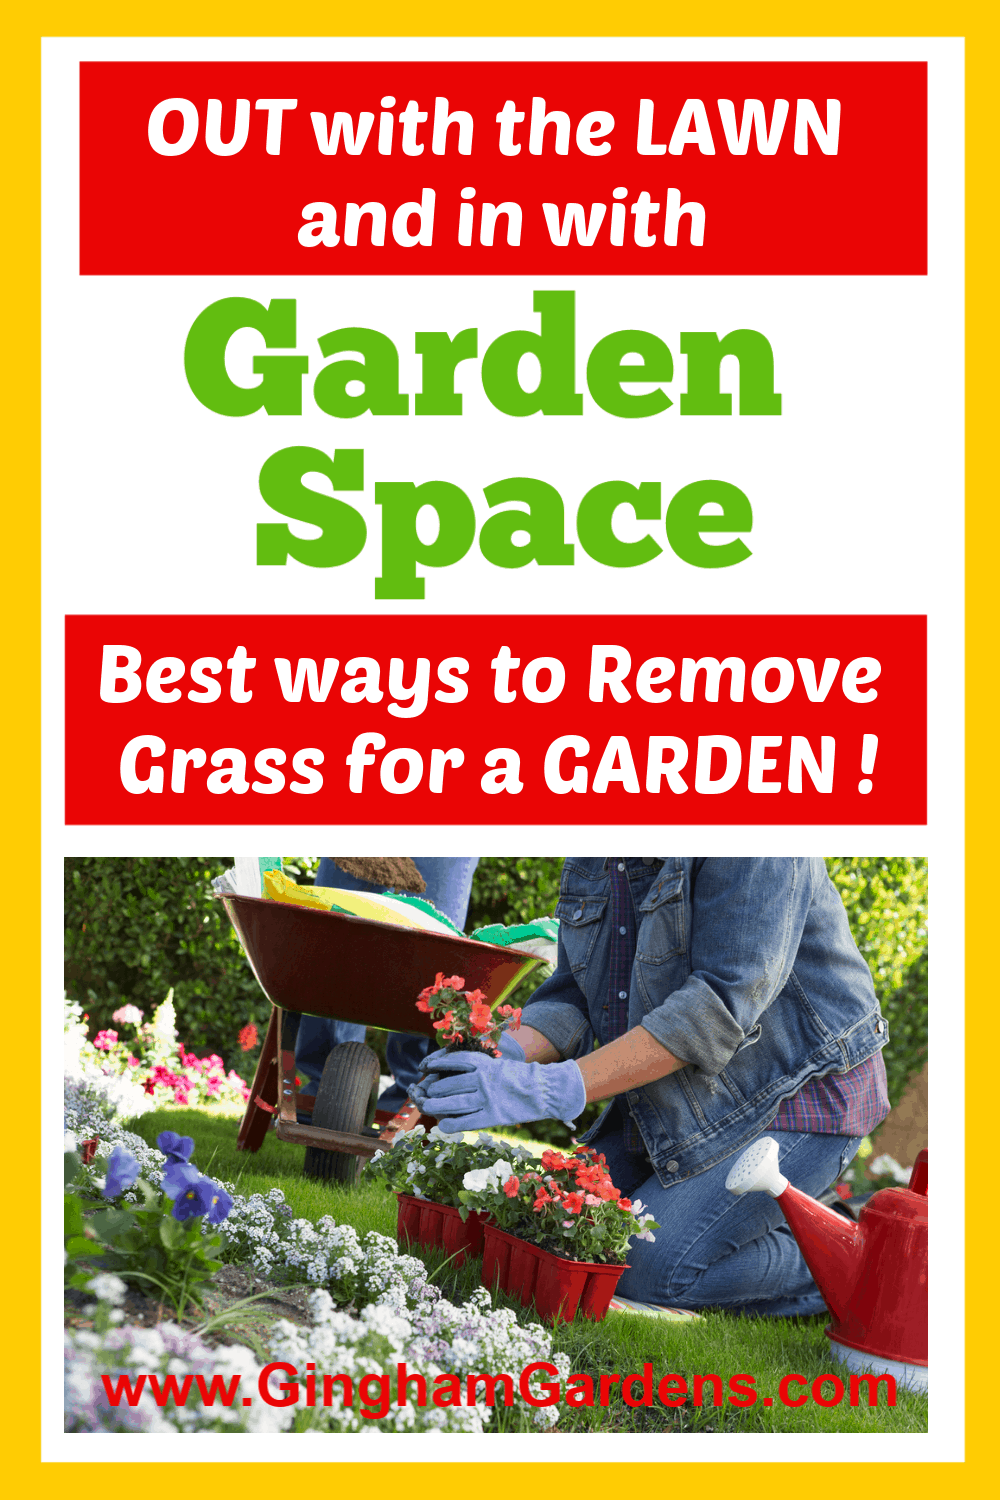 Image of a Gardener with text overlay - Out with the Lawn and in with Garden Space